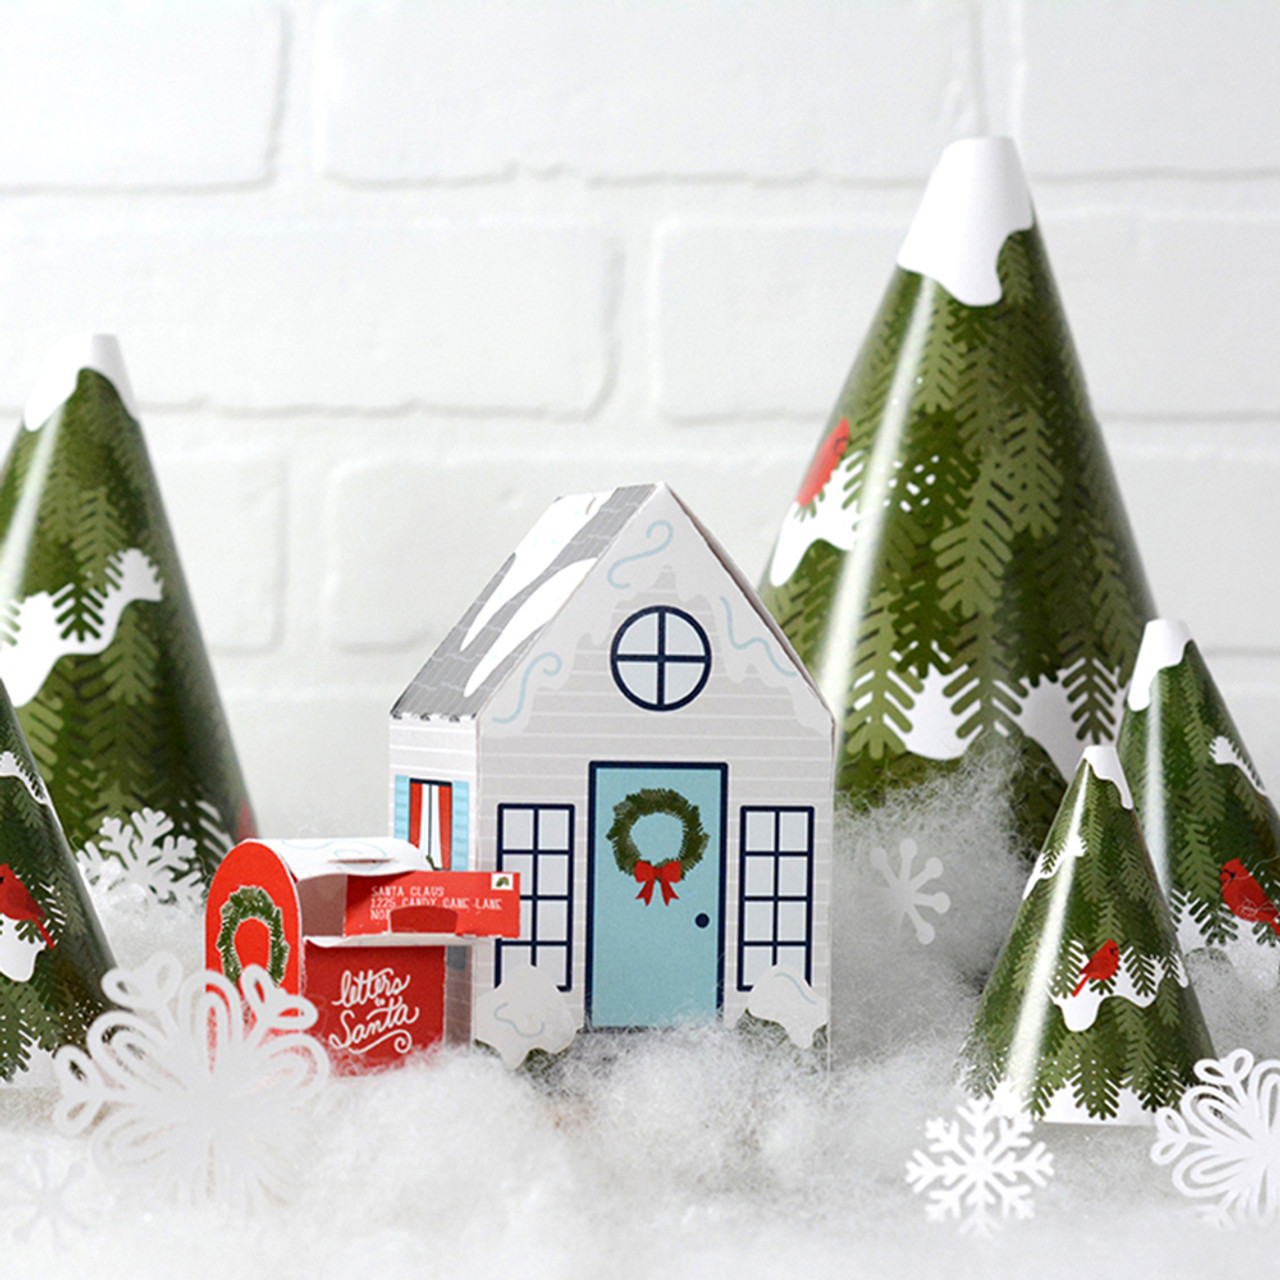 Christmas Village.Christmas Village Collection Download And Print